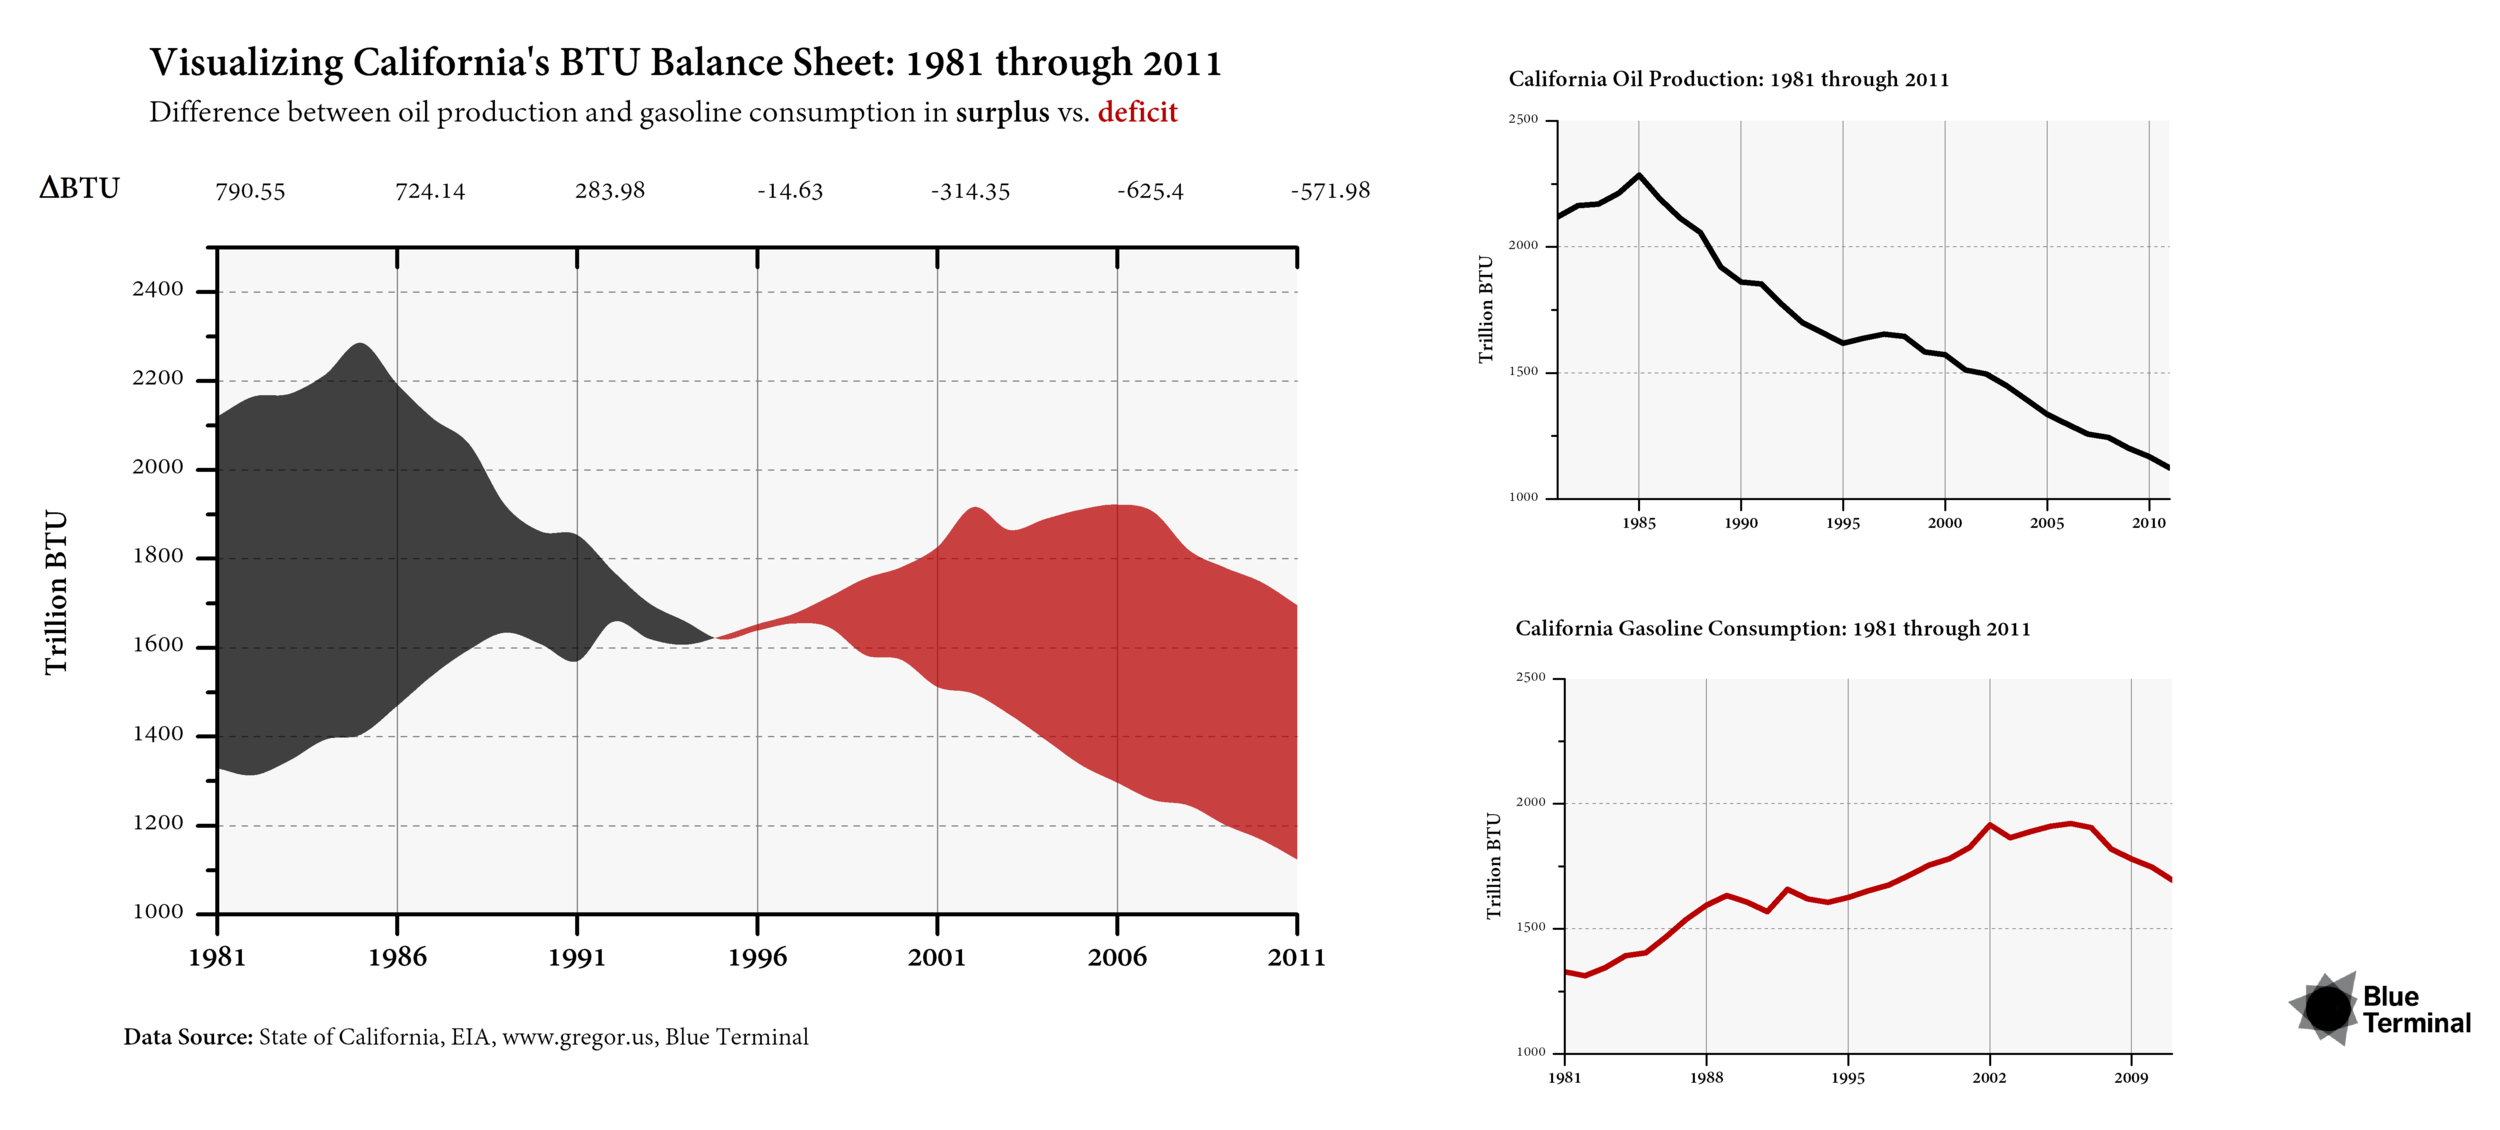 VISUALIZING CALIFORNIA'S BTU BALANCE SHEET: 1981 THROUGH 2011 Release Date : February 2014   In this unique form for plotting the difference between California's oil production andgasoline consumption surplus turned deficit, we've chosen to create a multi-plot data displaythat highlights the two original data sources from the State of California and the EIA and thefinal overlay.  In the main plot on the left, see the two-color area chart that changes colors from black to redbased on whether the BTU balance sheet is in surplus or deficit. The top x-axis shows thedifferential between production and consumption at each highlighted year. The data series isformatted to normalize the units in BTUs.